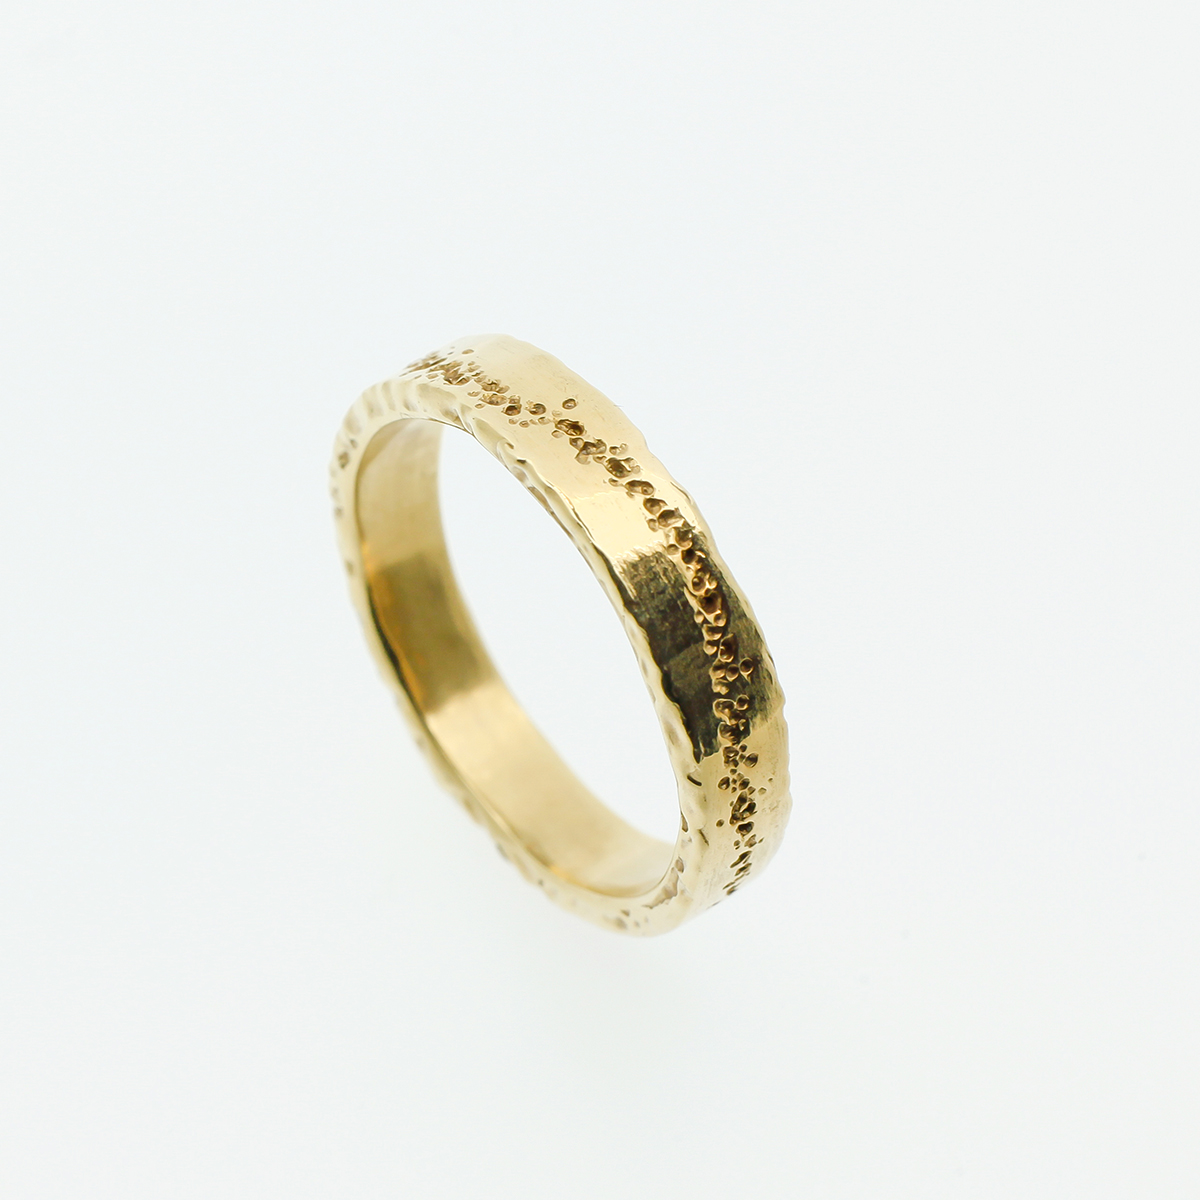 Golden wedding ring with original line in the band